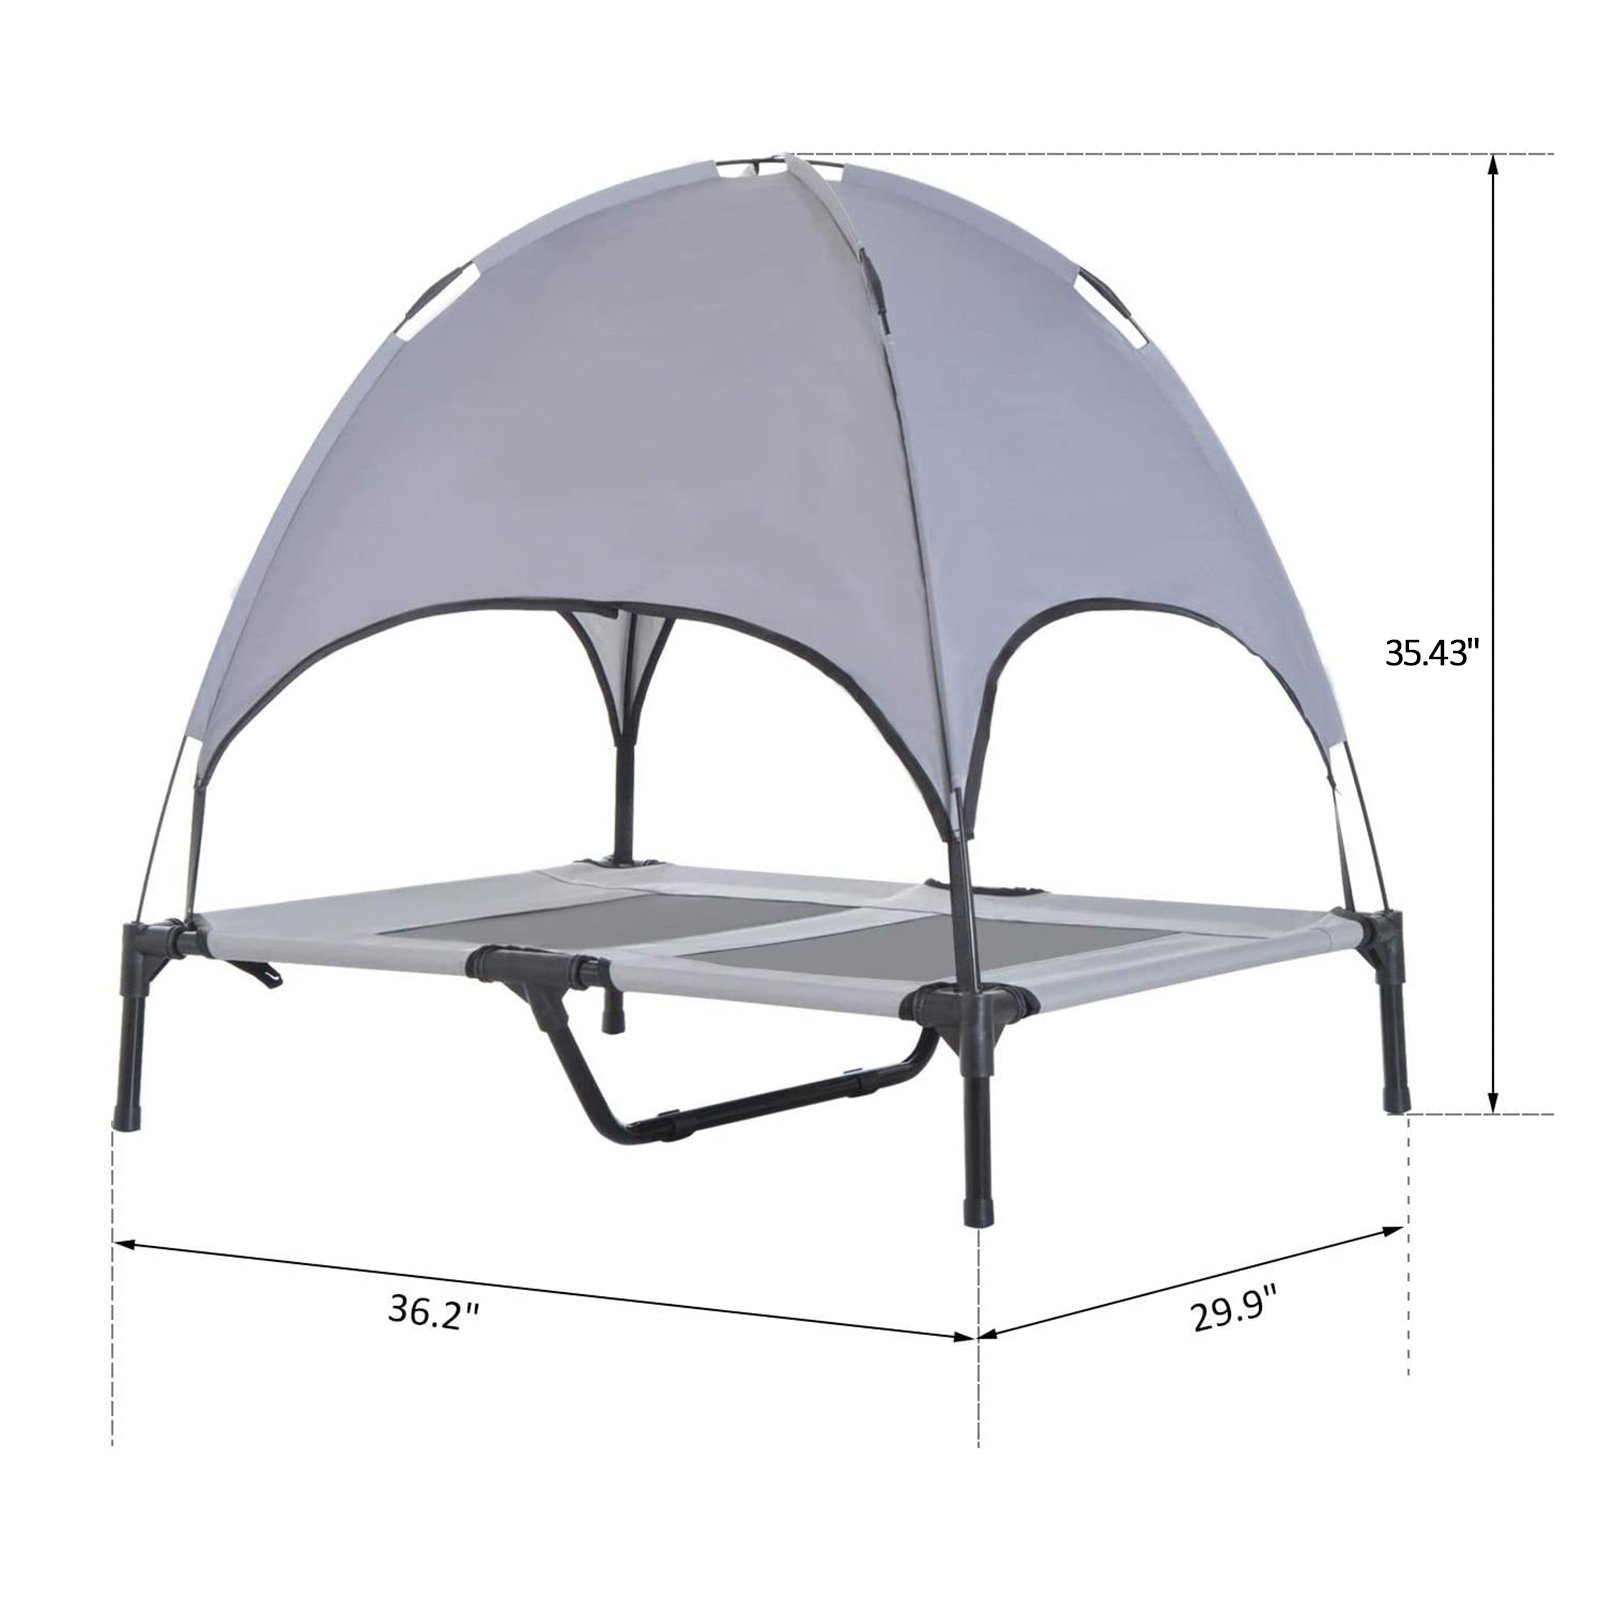 PawHut-Elevated-Pet-Bed-Dog-Foldable-Cot-Tent-Canopy-Instant-Shelter-Outdoor thumbnail 14